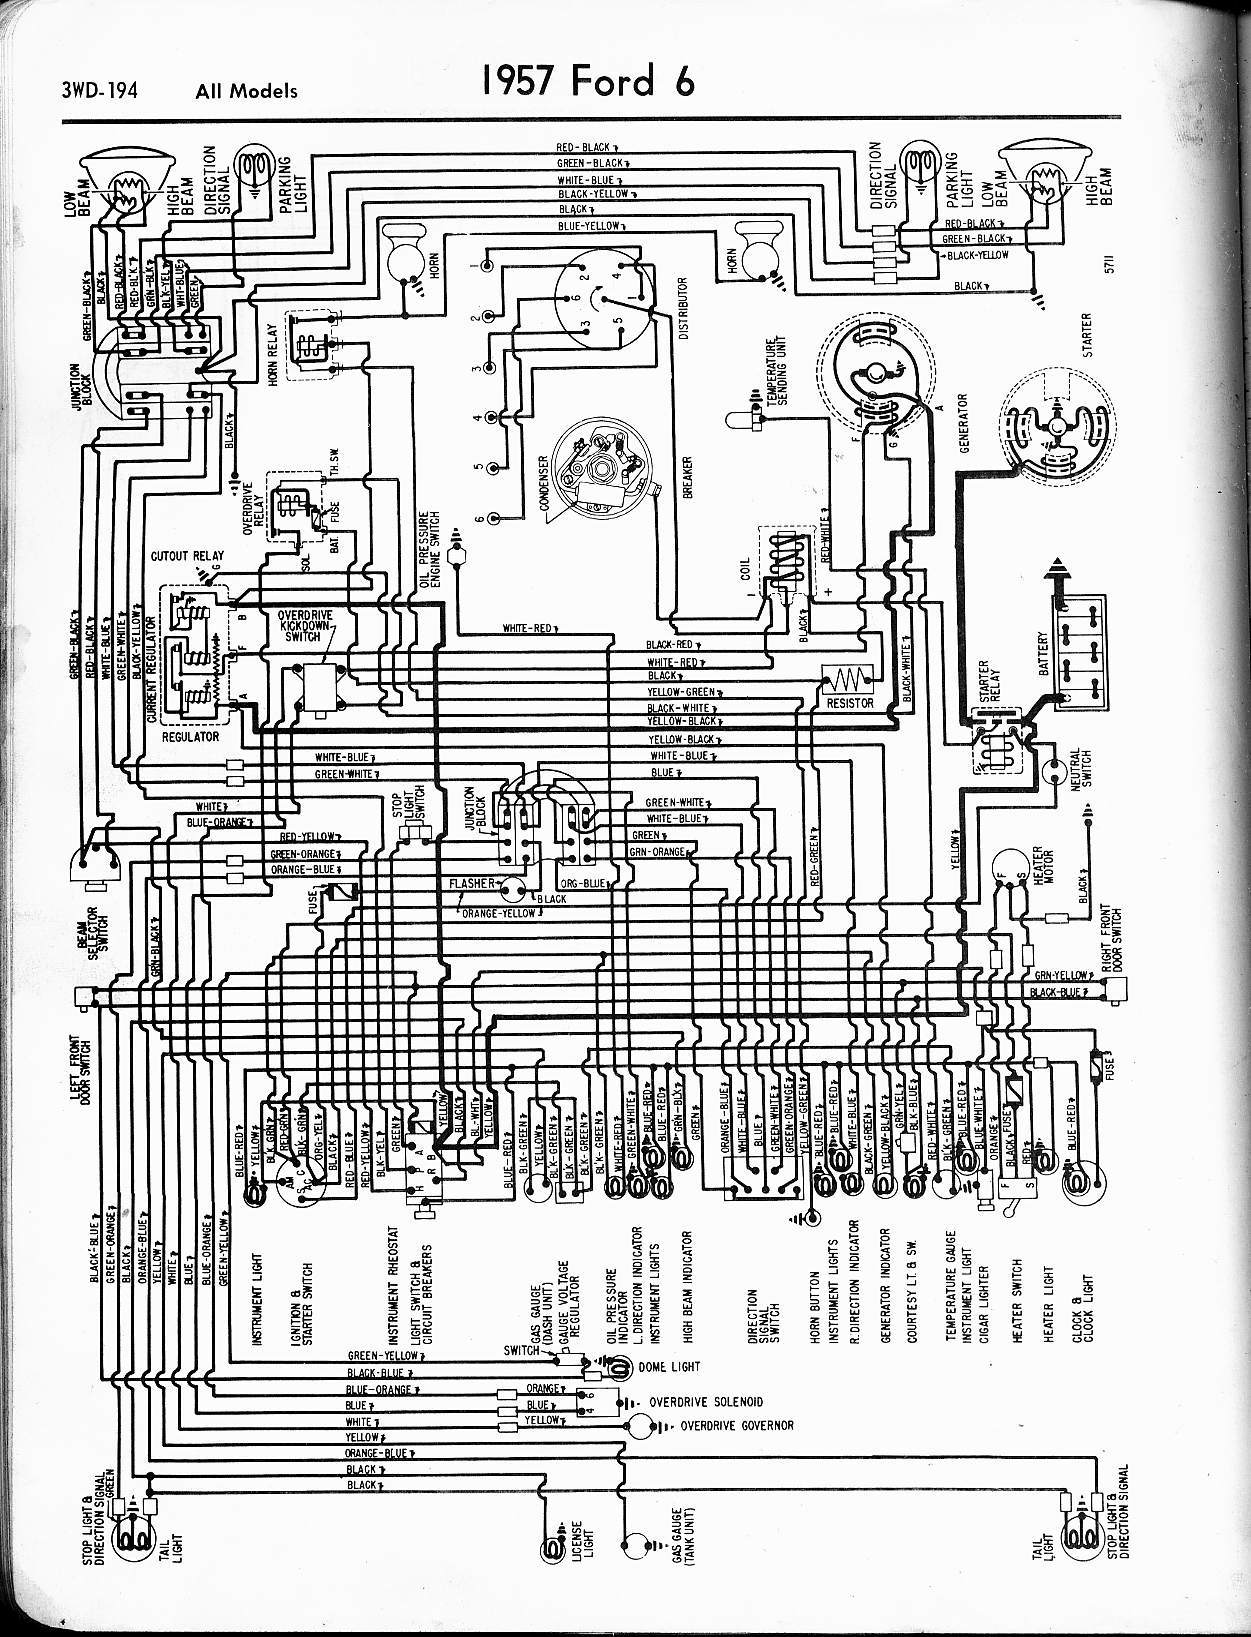 1975 ford f250 wiring diagram 4 wire well pump 1966 f 100 turn signal parts